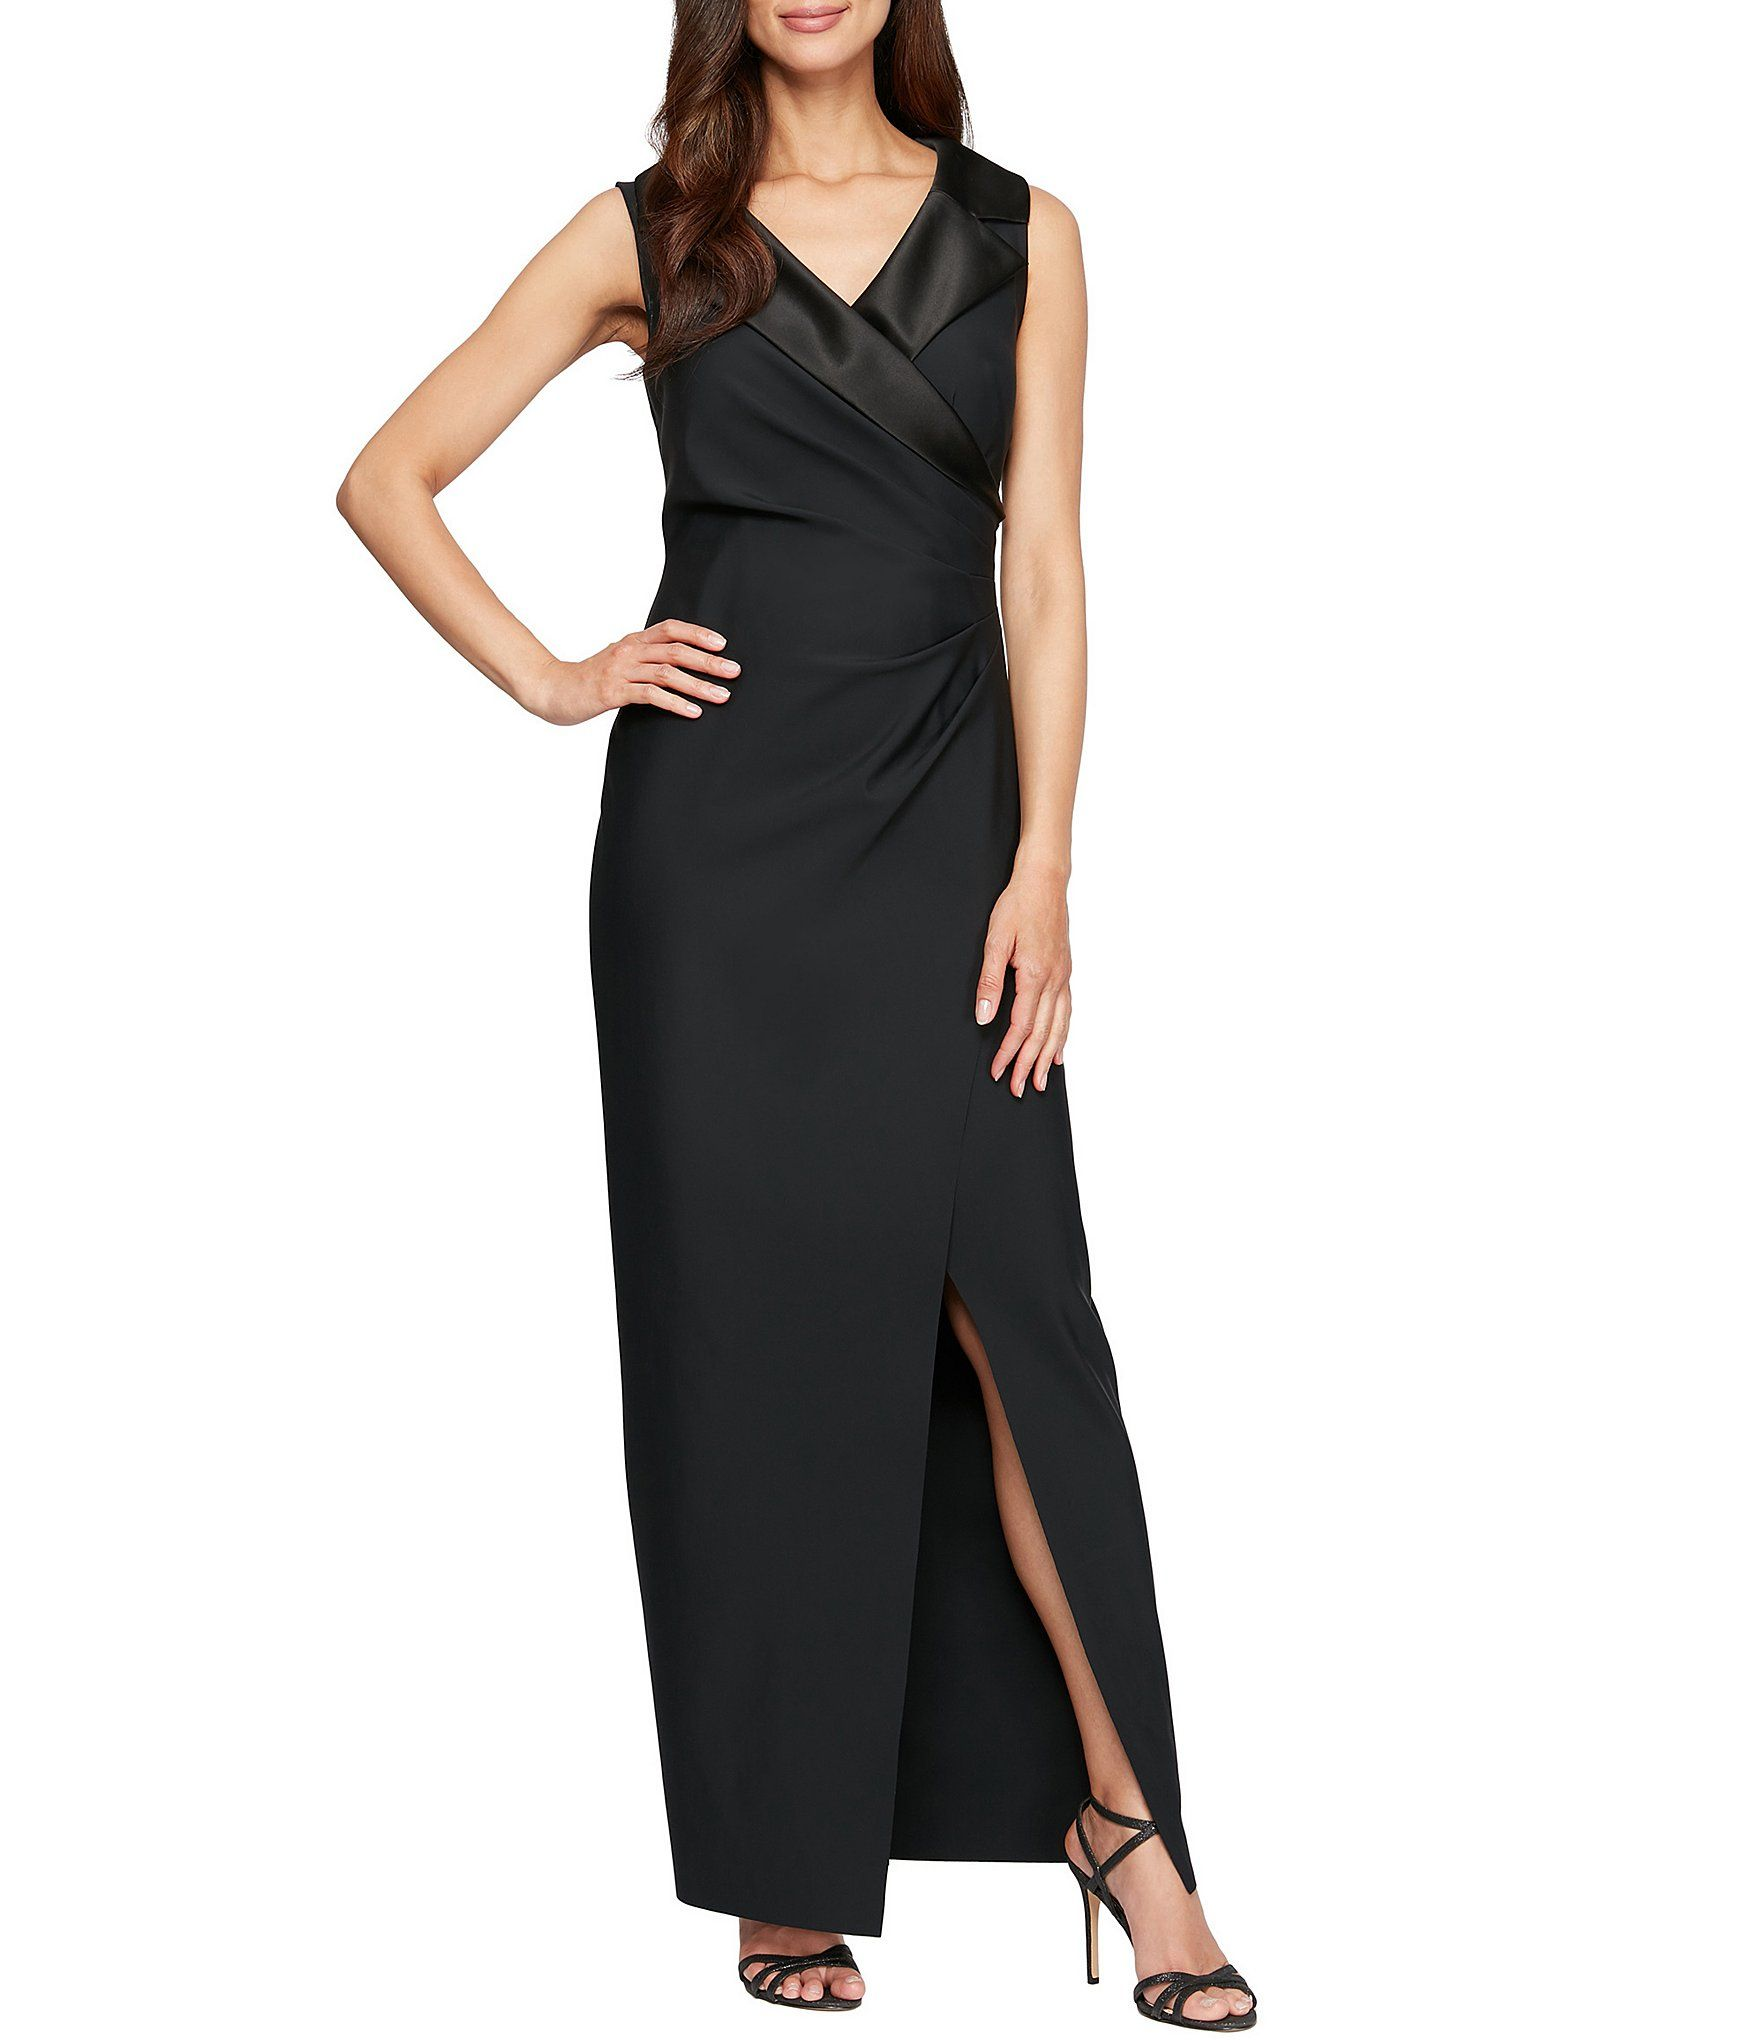 Adrianna Papell Womens Sleevelss Faux Wrap Bodice Light Satin High Slit Dress